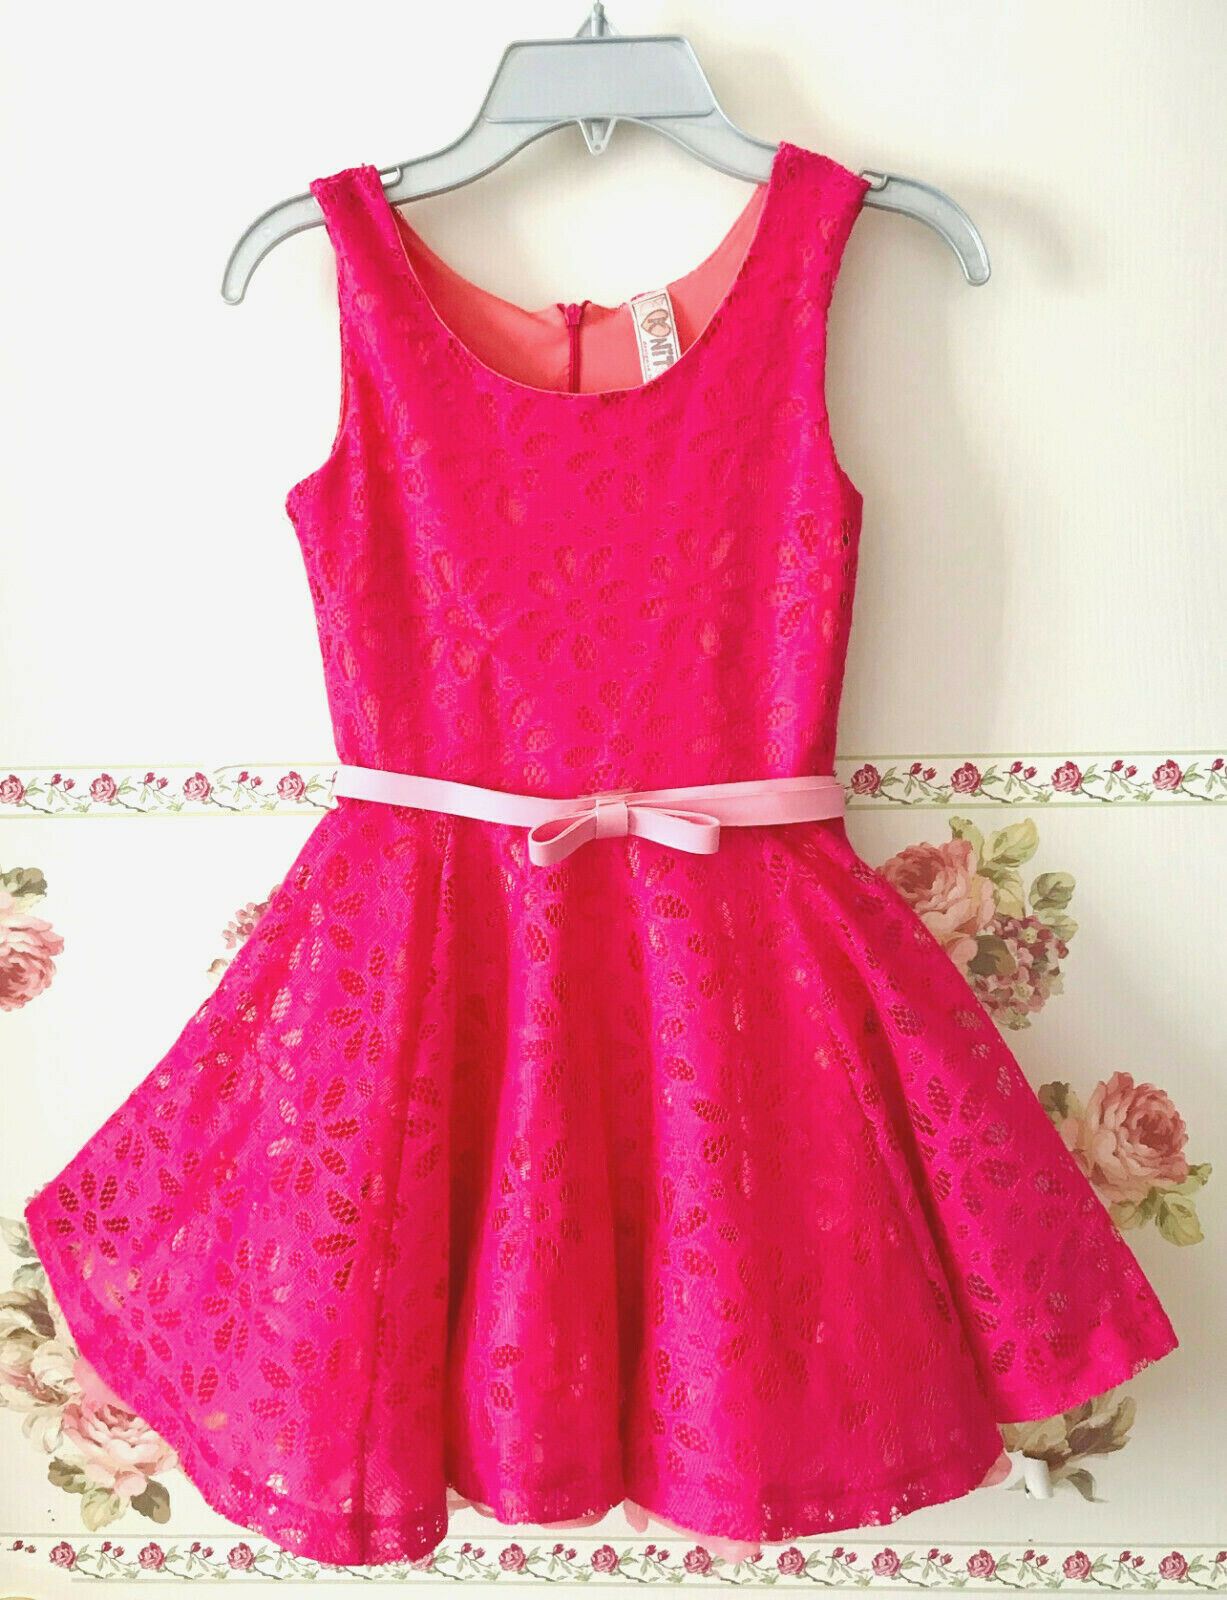 NITWORKS Hot Pink Crochet Lace Flared party Recital Formal Holiday Dress Girls 7